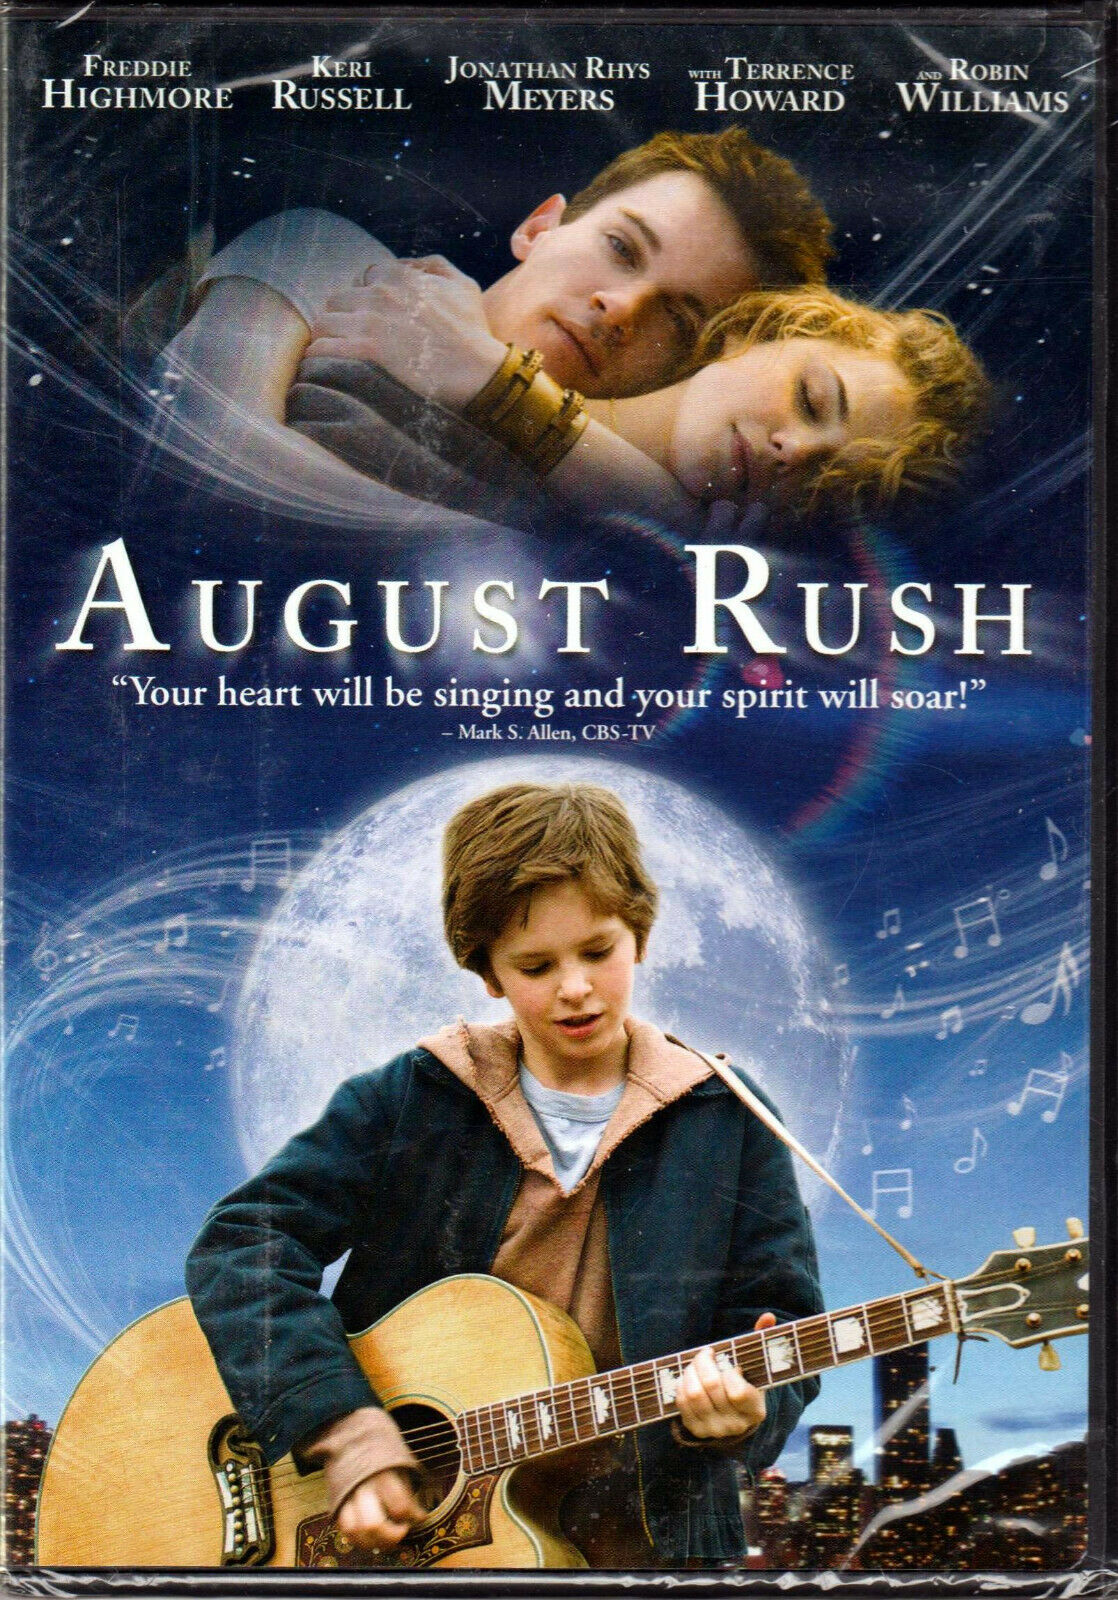 AUGUST RUSH on DVD of GUITAR PLAYER Kid ORPHAN Family MUSIC